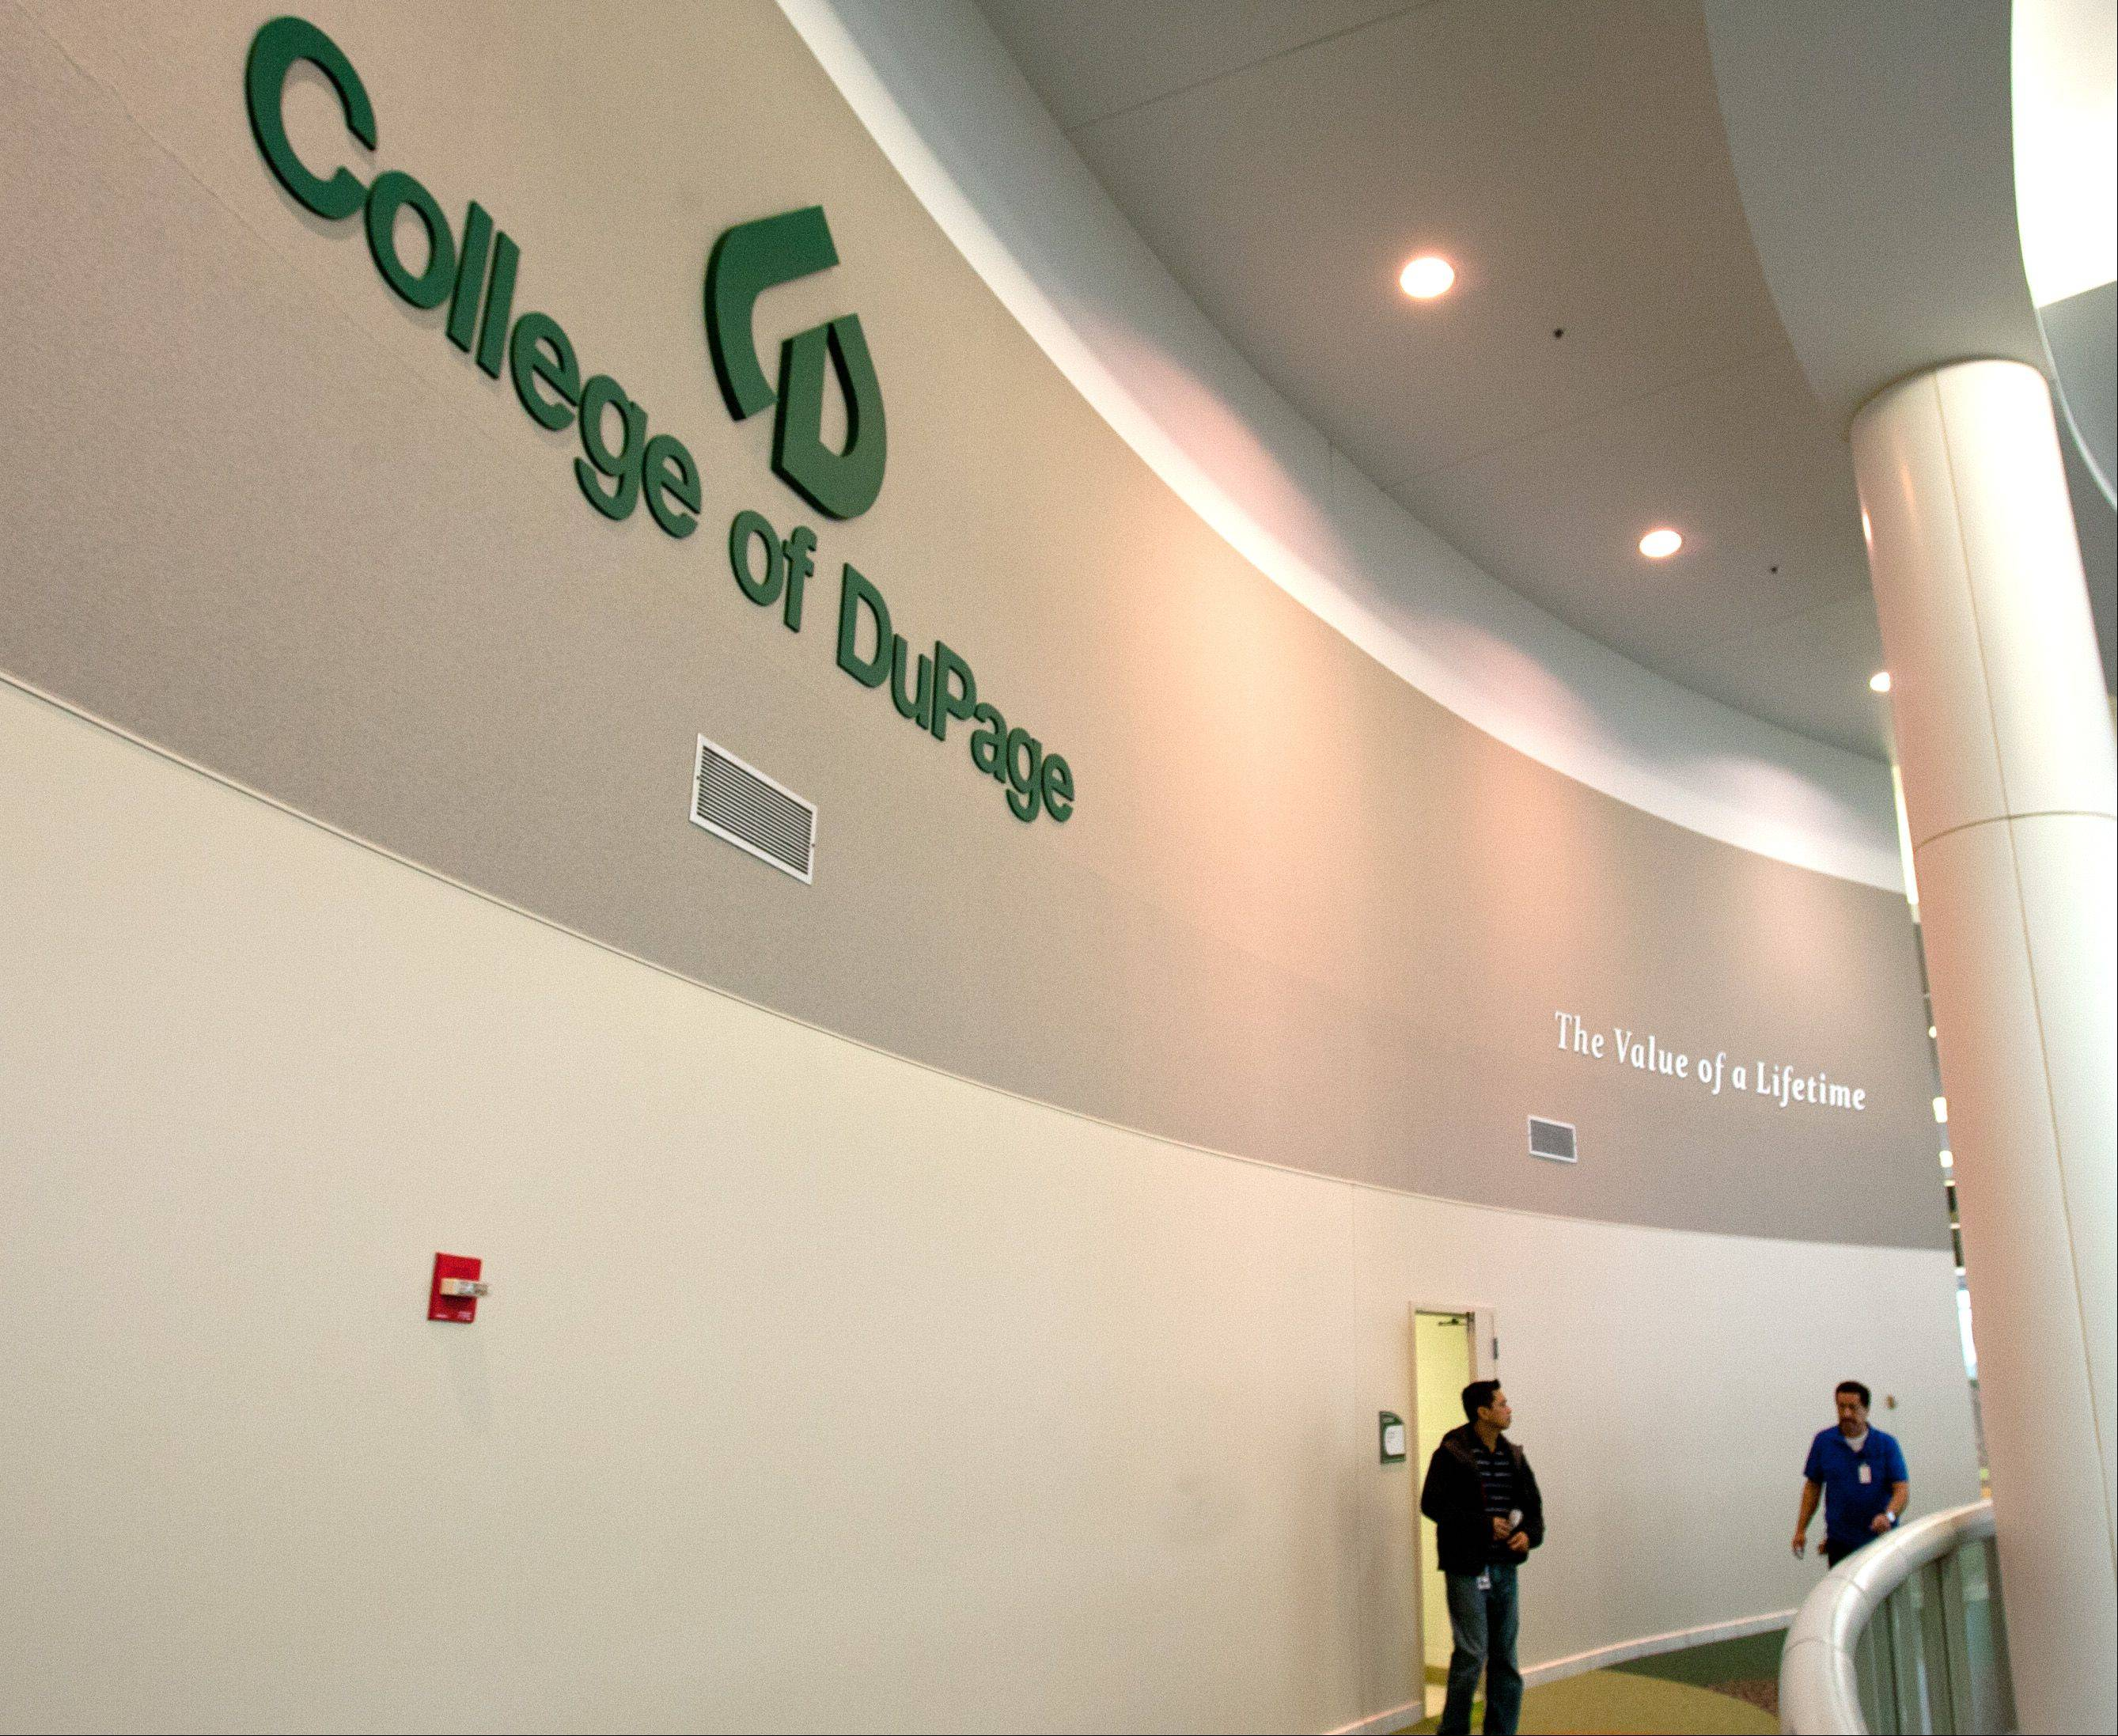 College of DuPage is spending $290,000 on a consultant to develop a �brand� for the college. It�s part of an overall effort to increase the college�s profile and make it more competitive with other institutions of higher learning.